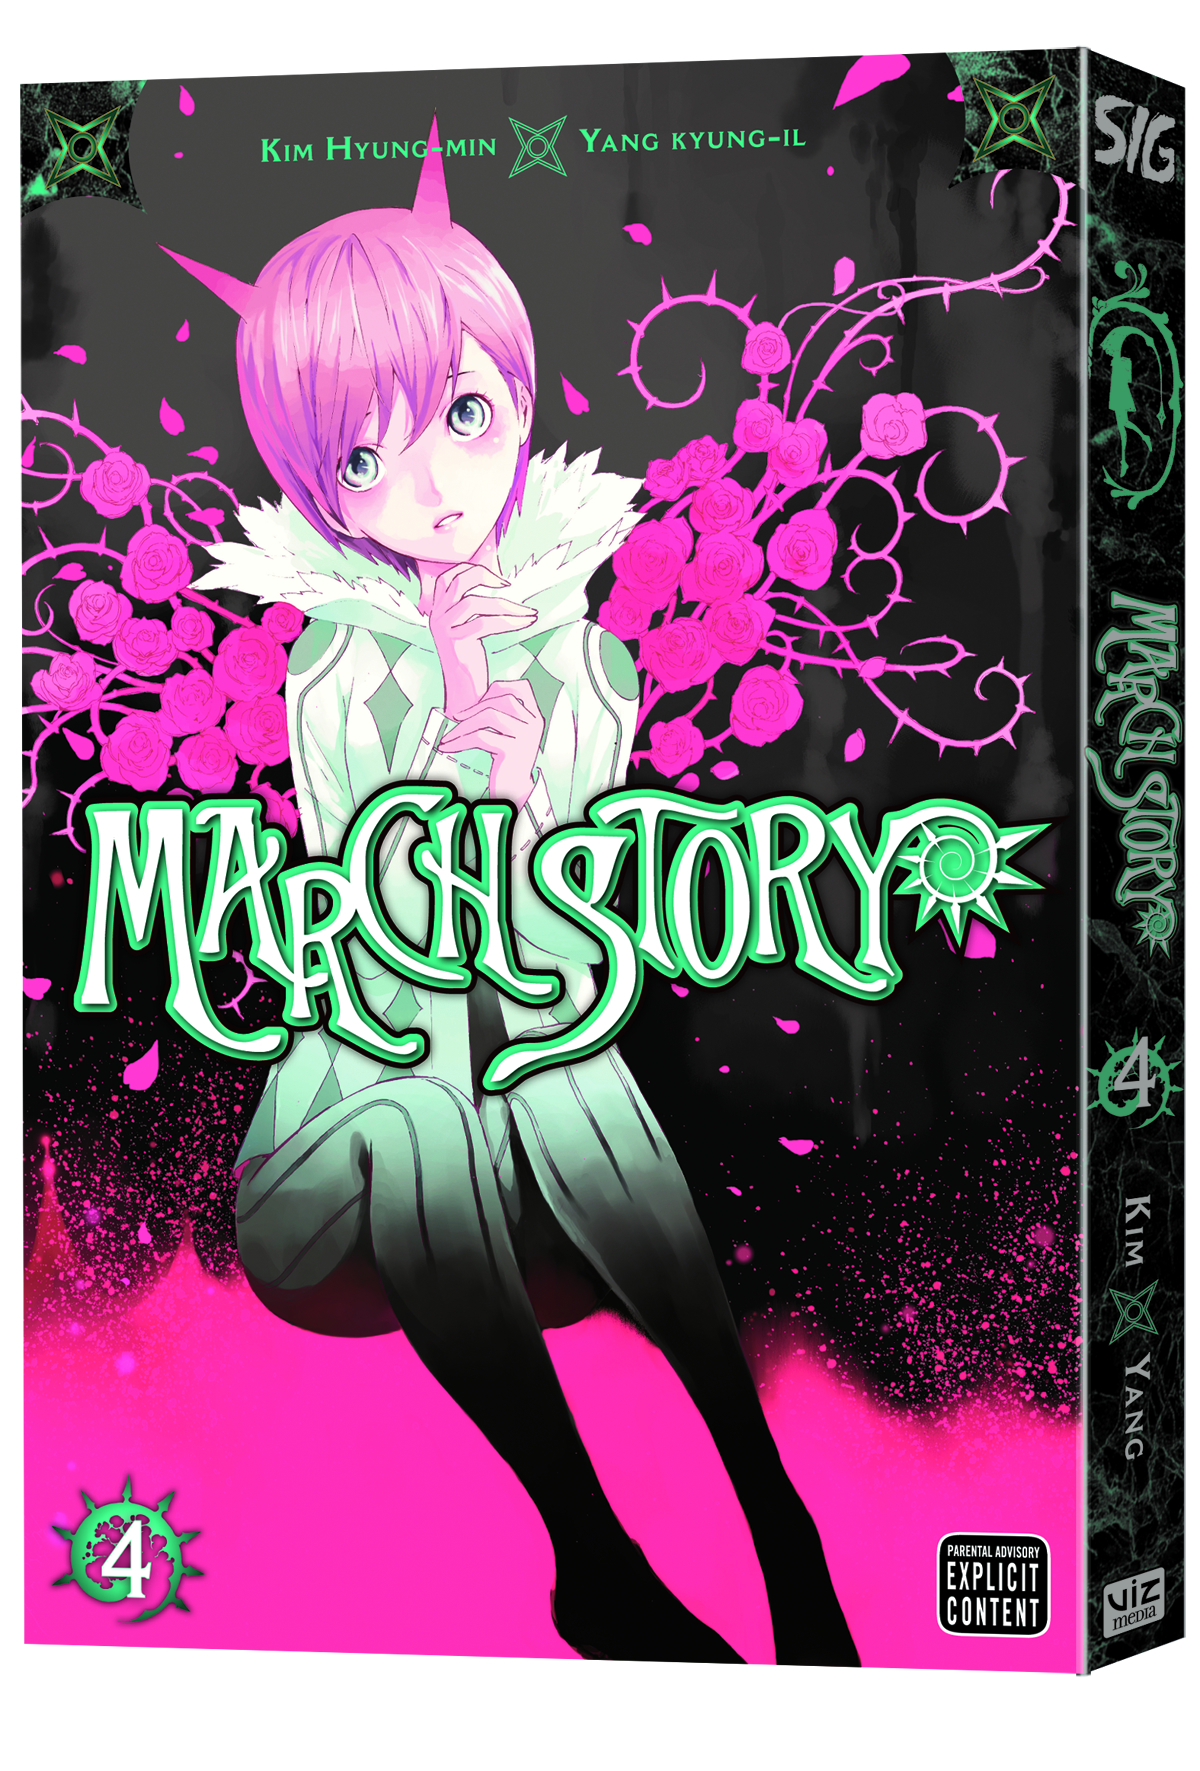 MARCH STORY GN VOL 04